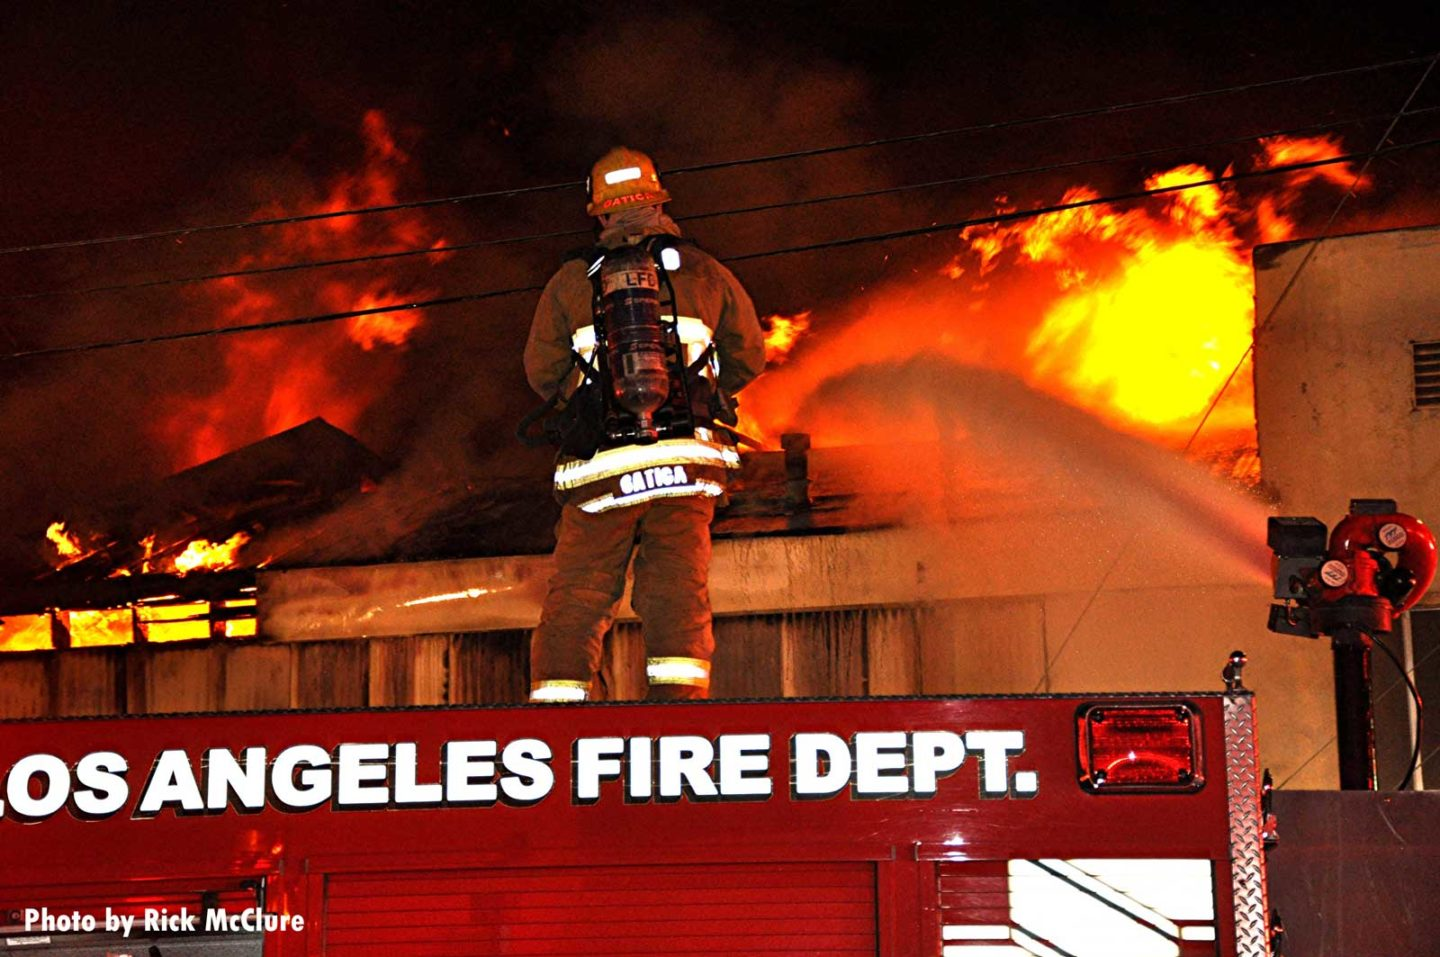 Flames shoot from the top of the building as firefighter observes from atop a Los Angeles City fire truck